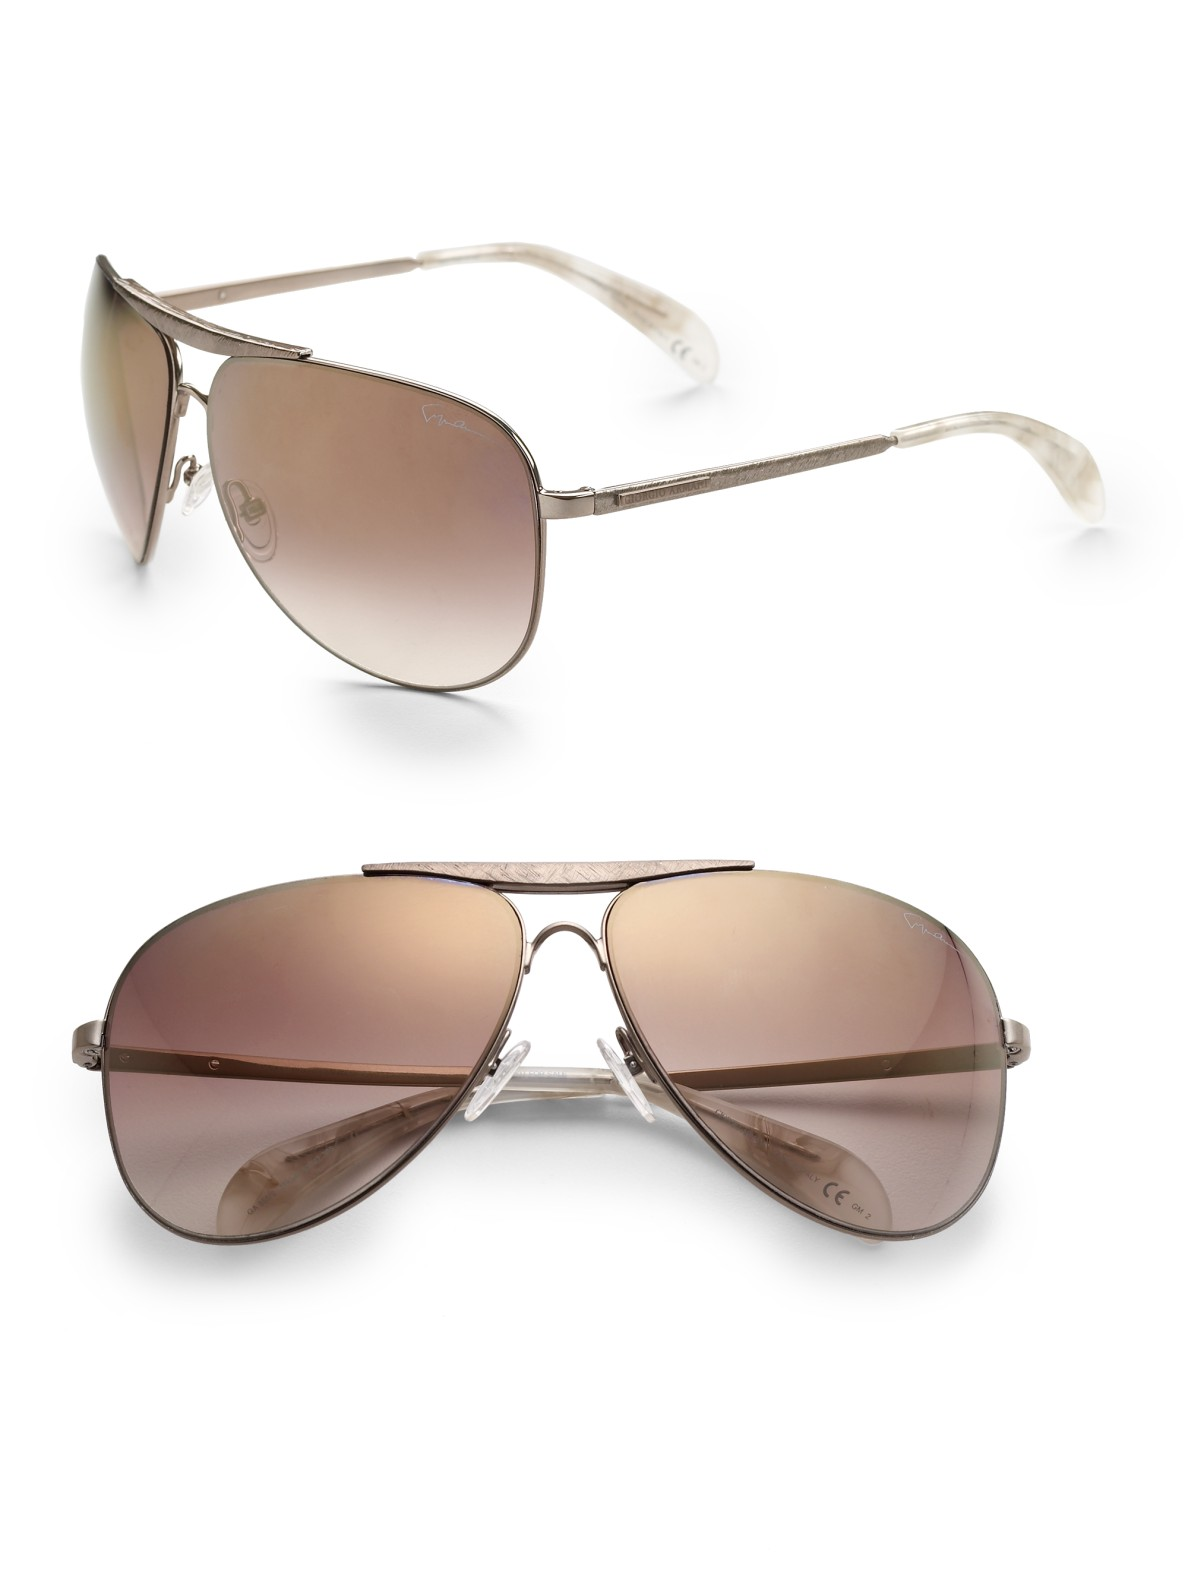 ac72d0db7e4b Armani Metal Aviator Sunglasses